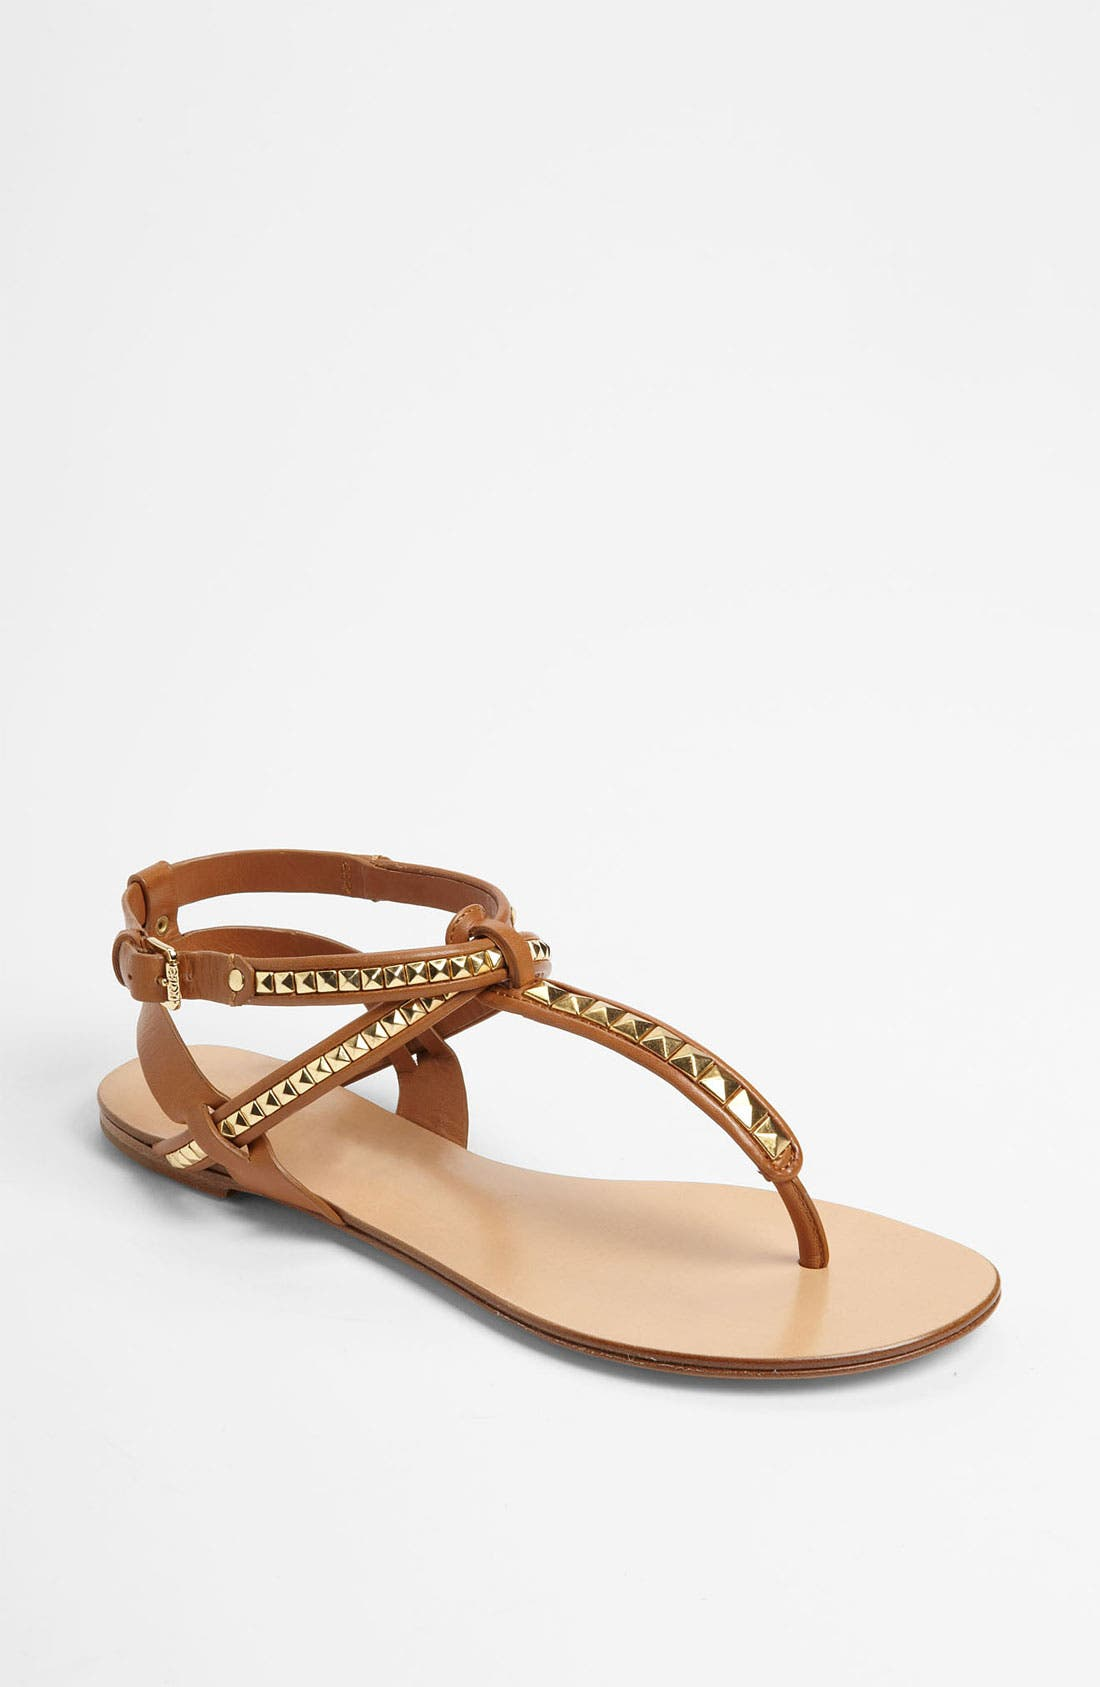 Alternate Image 1 Selected - KORS Michael Kors 'Jaina' Sandal